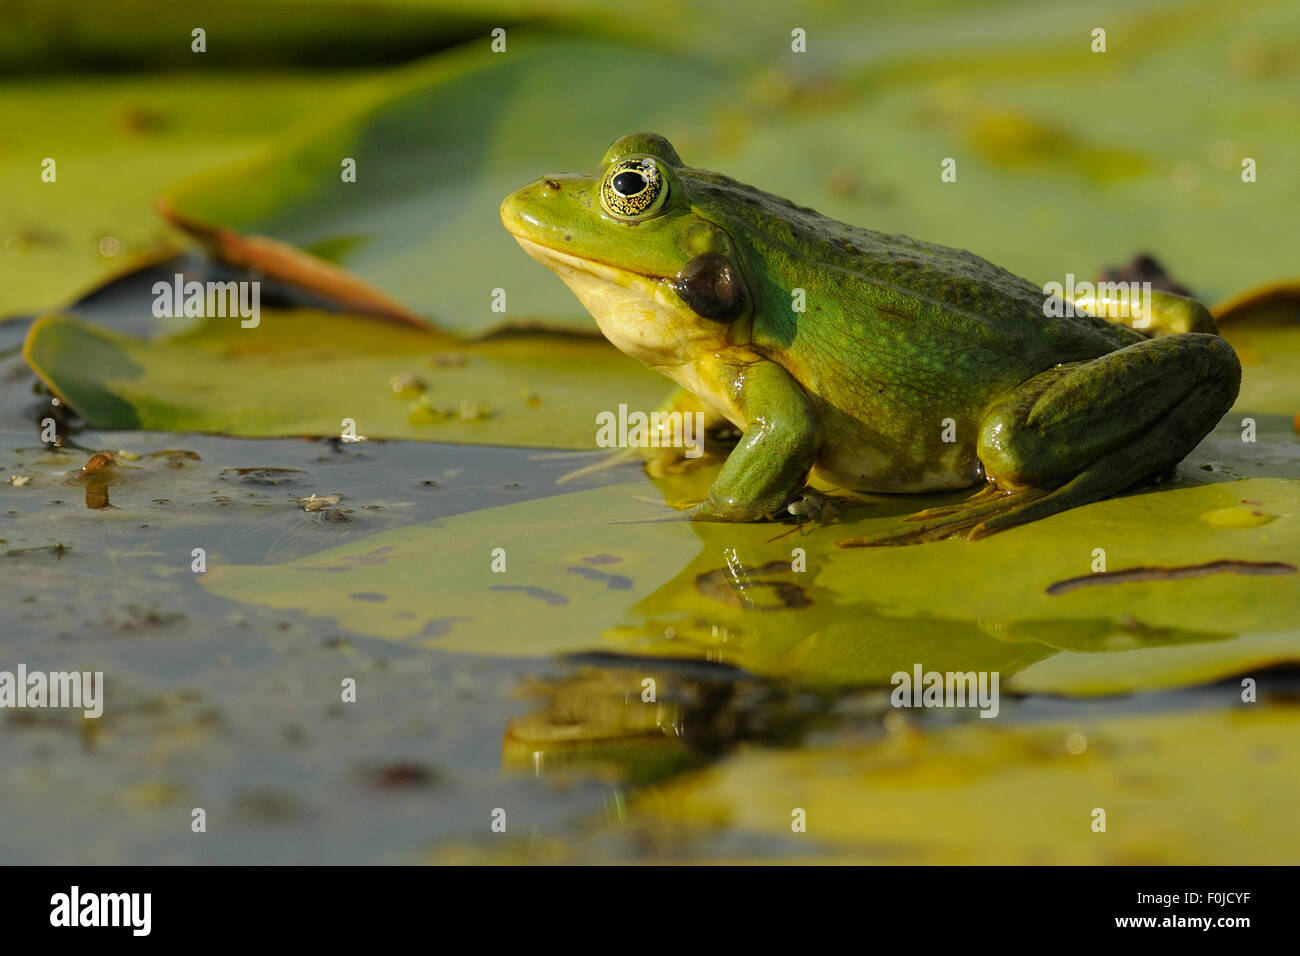 frog sitting lily pad stock photos u0026 frog sitting lily pad stock